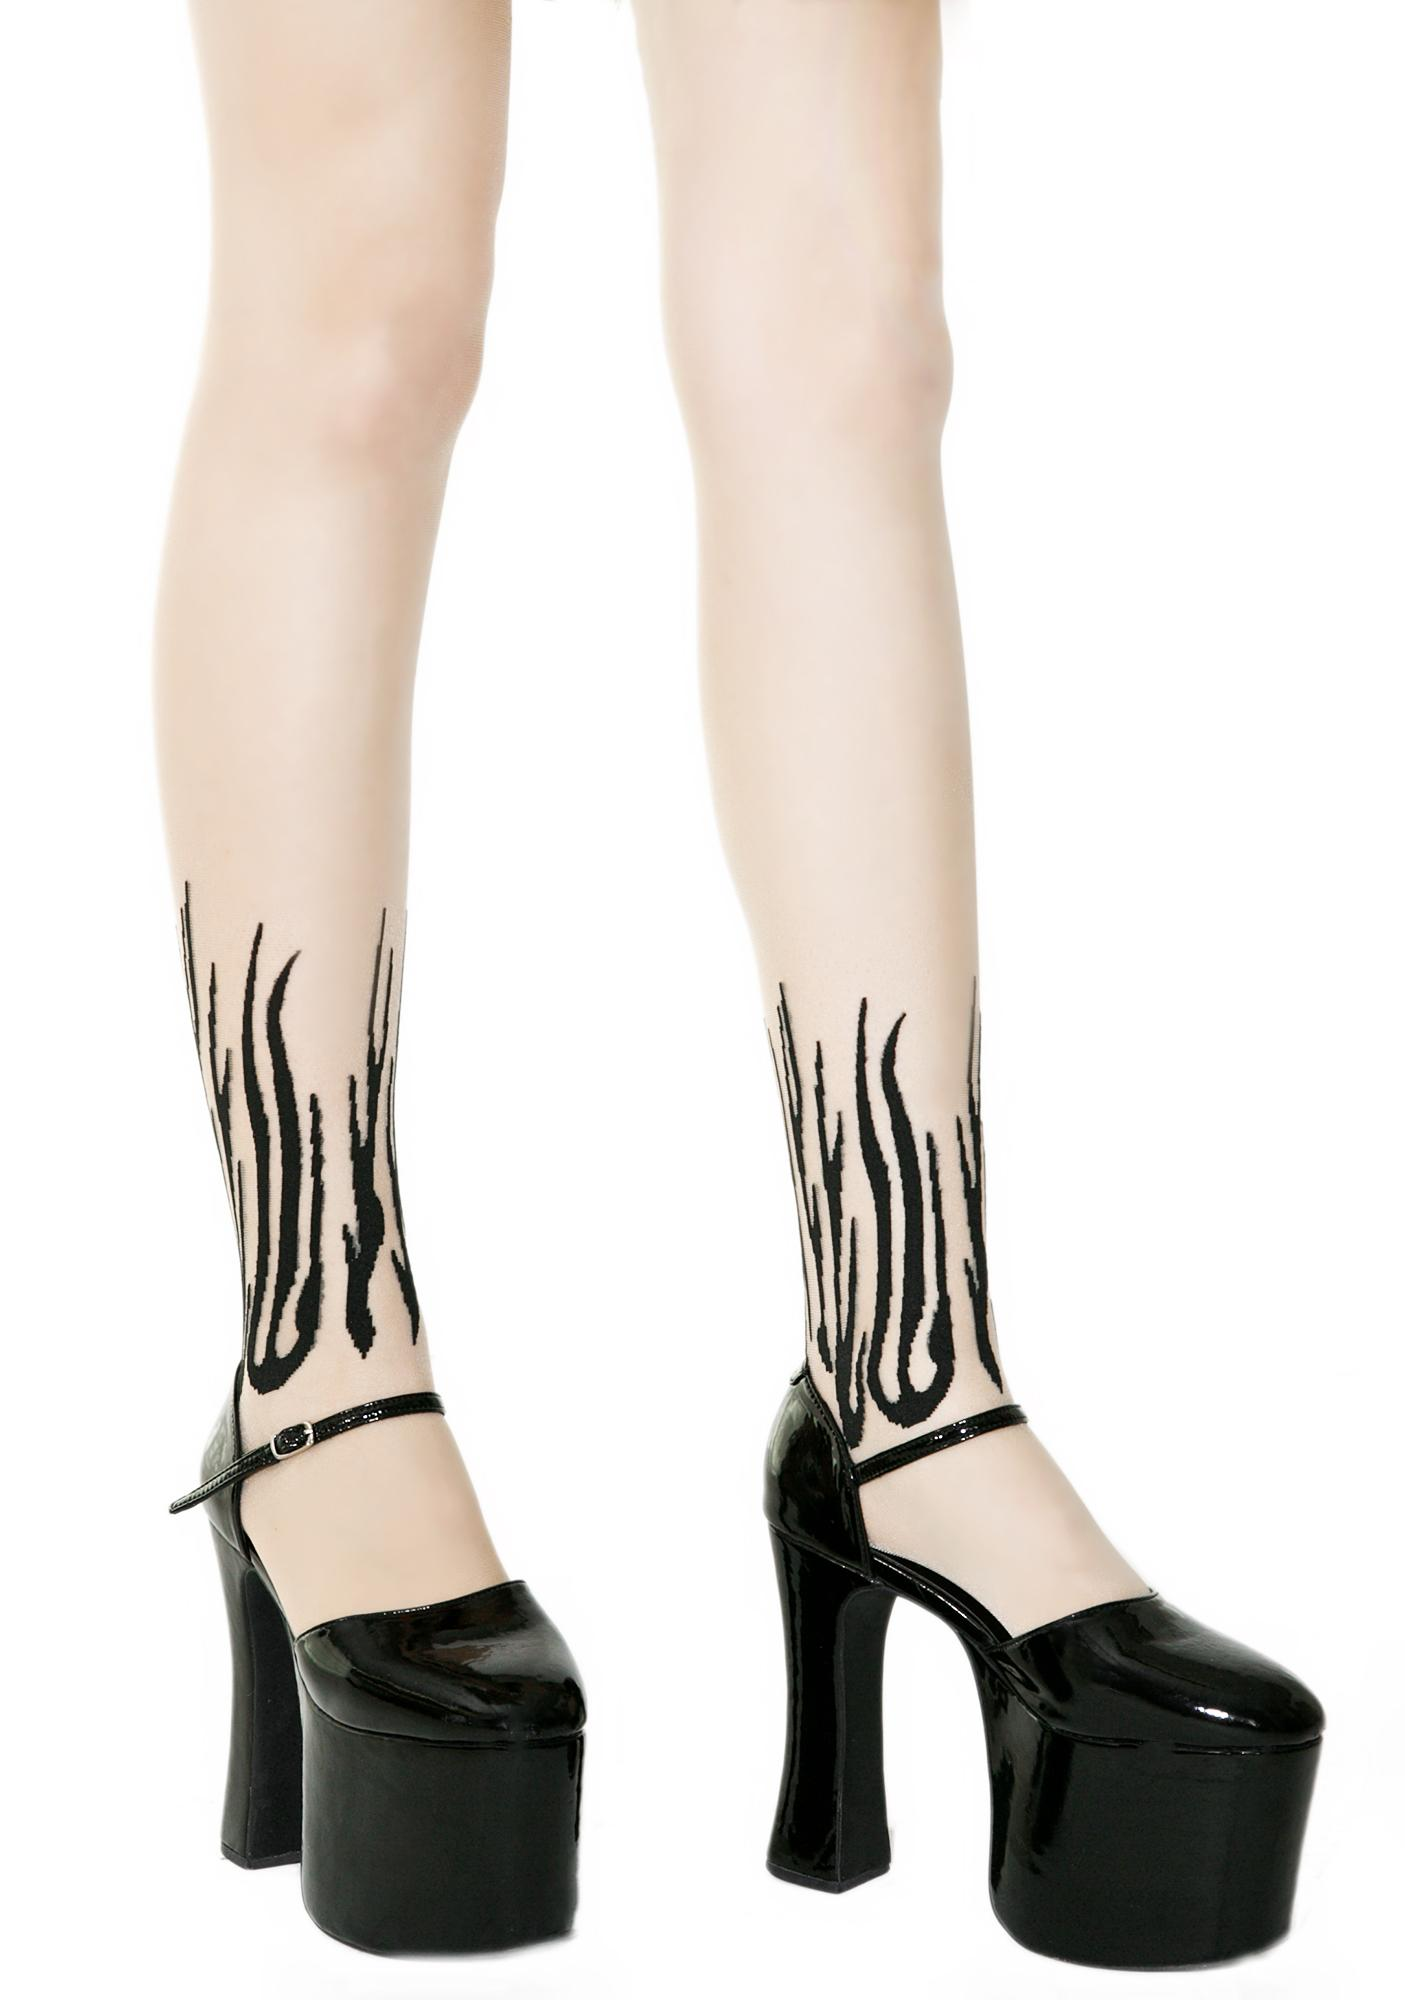 From Hades Flame Tights